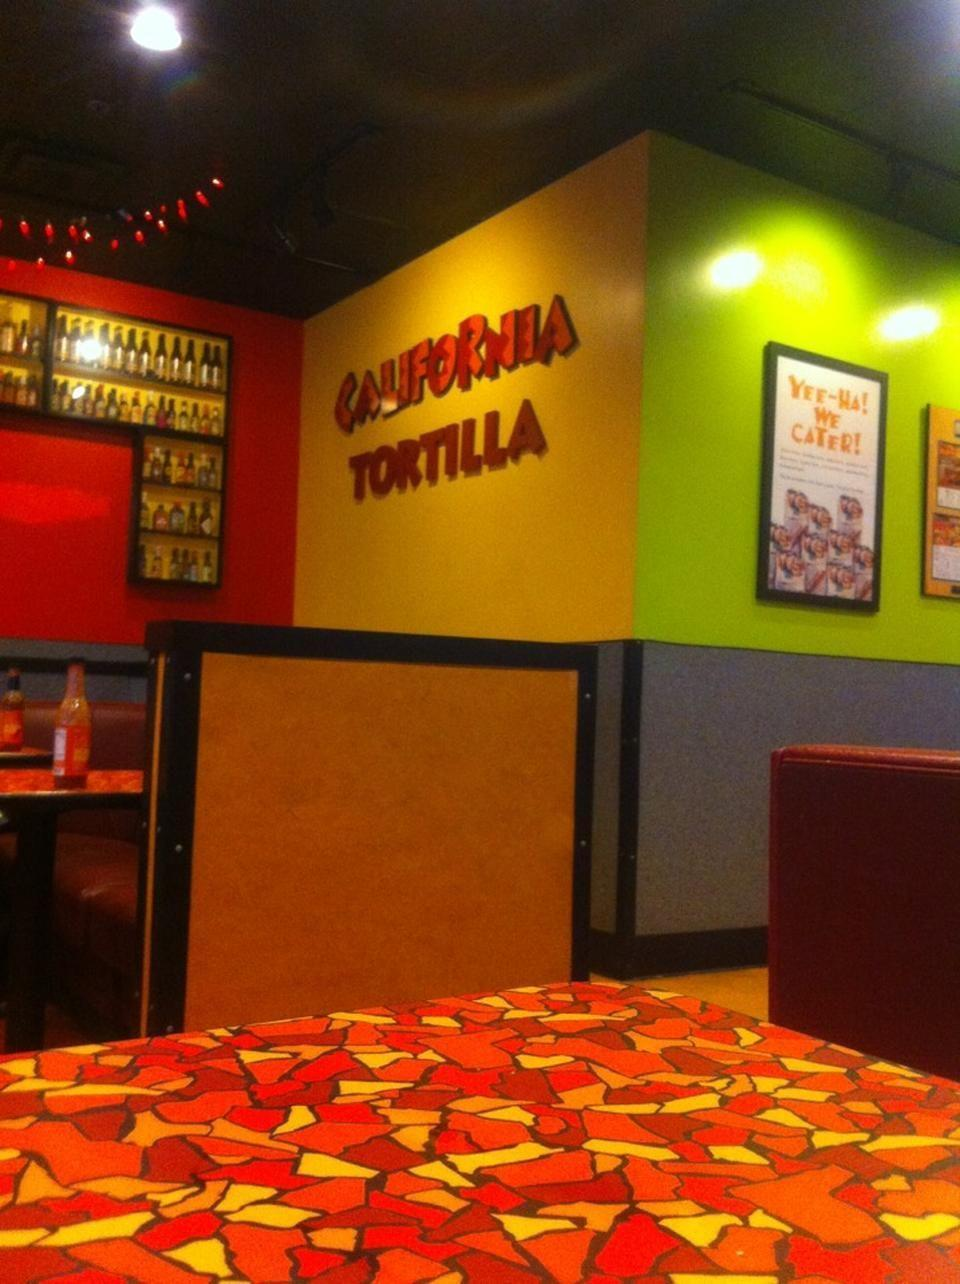 "<p><a href=""https://www.tripadvisor.com/Restaurant_Review-g34043-d3747020-Reviews-California_Tortilla-Newark_Delaware.html"" rel=""nofollow noopener"" target=""_blank"" data-ylk=""slk:California Tortilla"" class=""link rapid-noclick-resp"">California Tortilla</a>, Newark</p><p>""It isn't on the menu but ask for the Turkey Chili Bowl ... Yummy!<span class=""redactor-invisible-space"">"" -Foursquare user <a href=""https://foursquare.com/user/7277432"" rel=""nofollow noopener"" target=""_blank"" data-ylk=""slk:marissa"" class=""link rapid-noclick-resp"">marissa</a></span></p>"